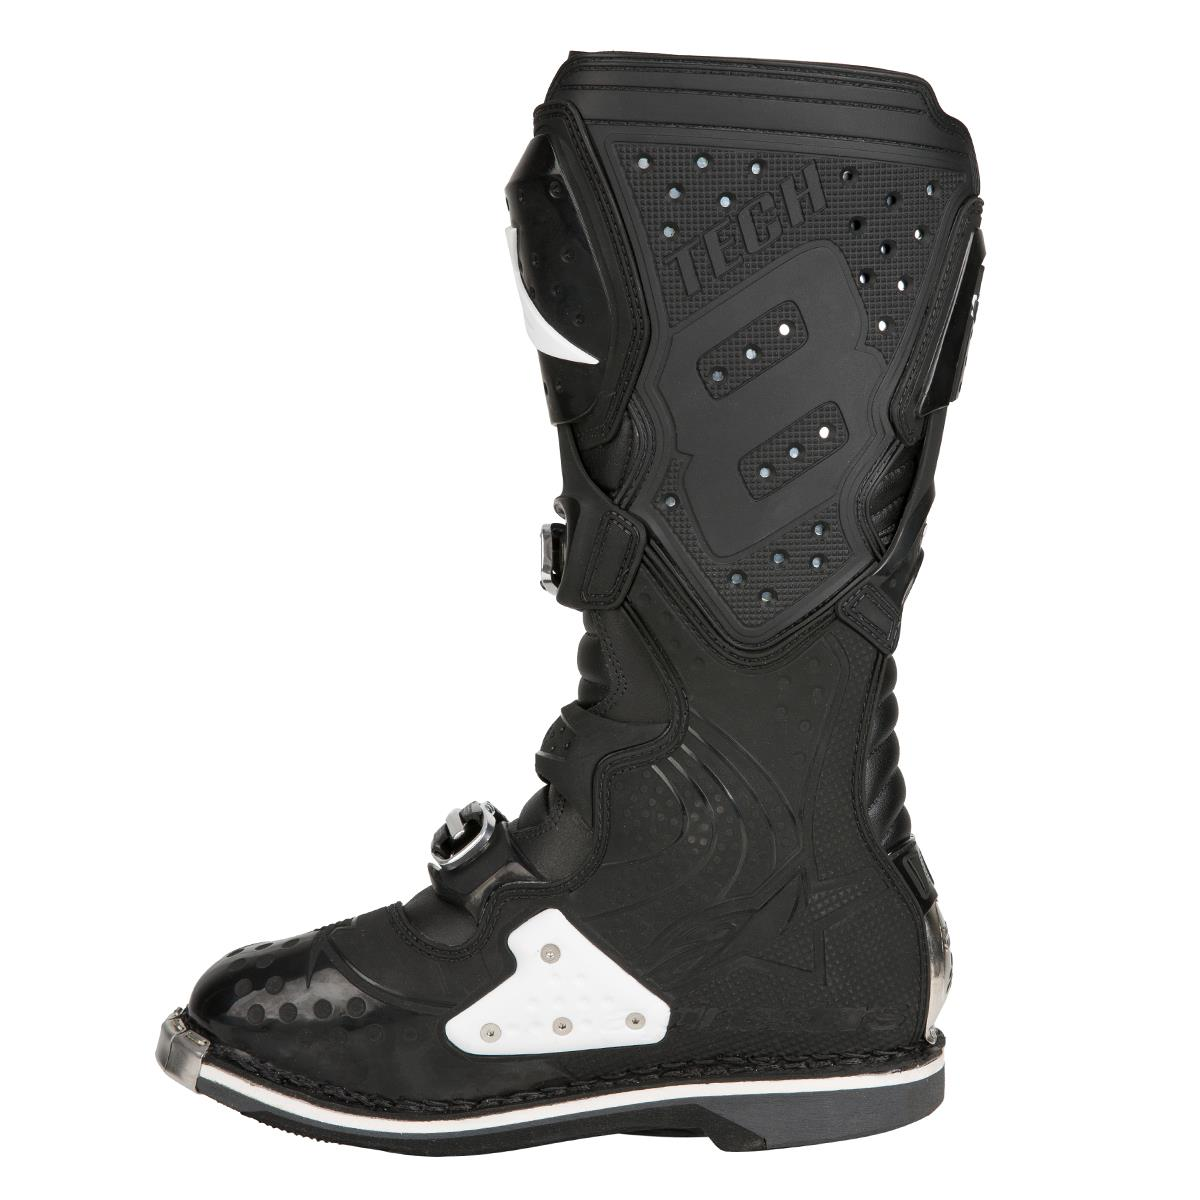 NEW Alpinestars Mx Tech 8 Late Model Motocross Boots Black Replacement Soles